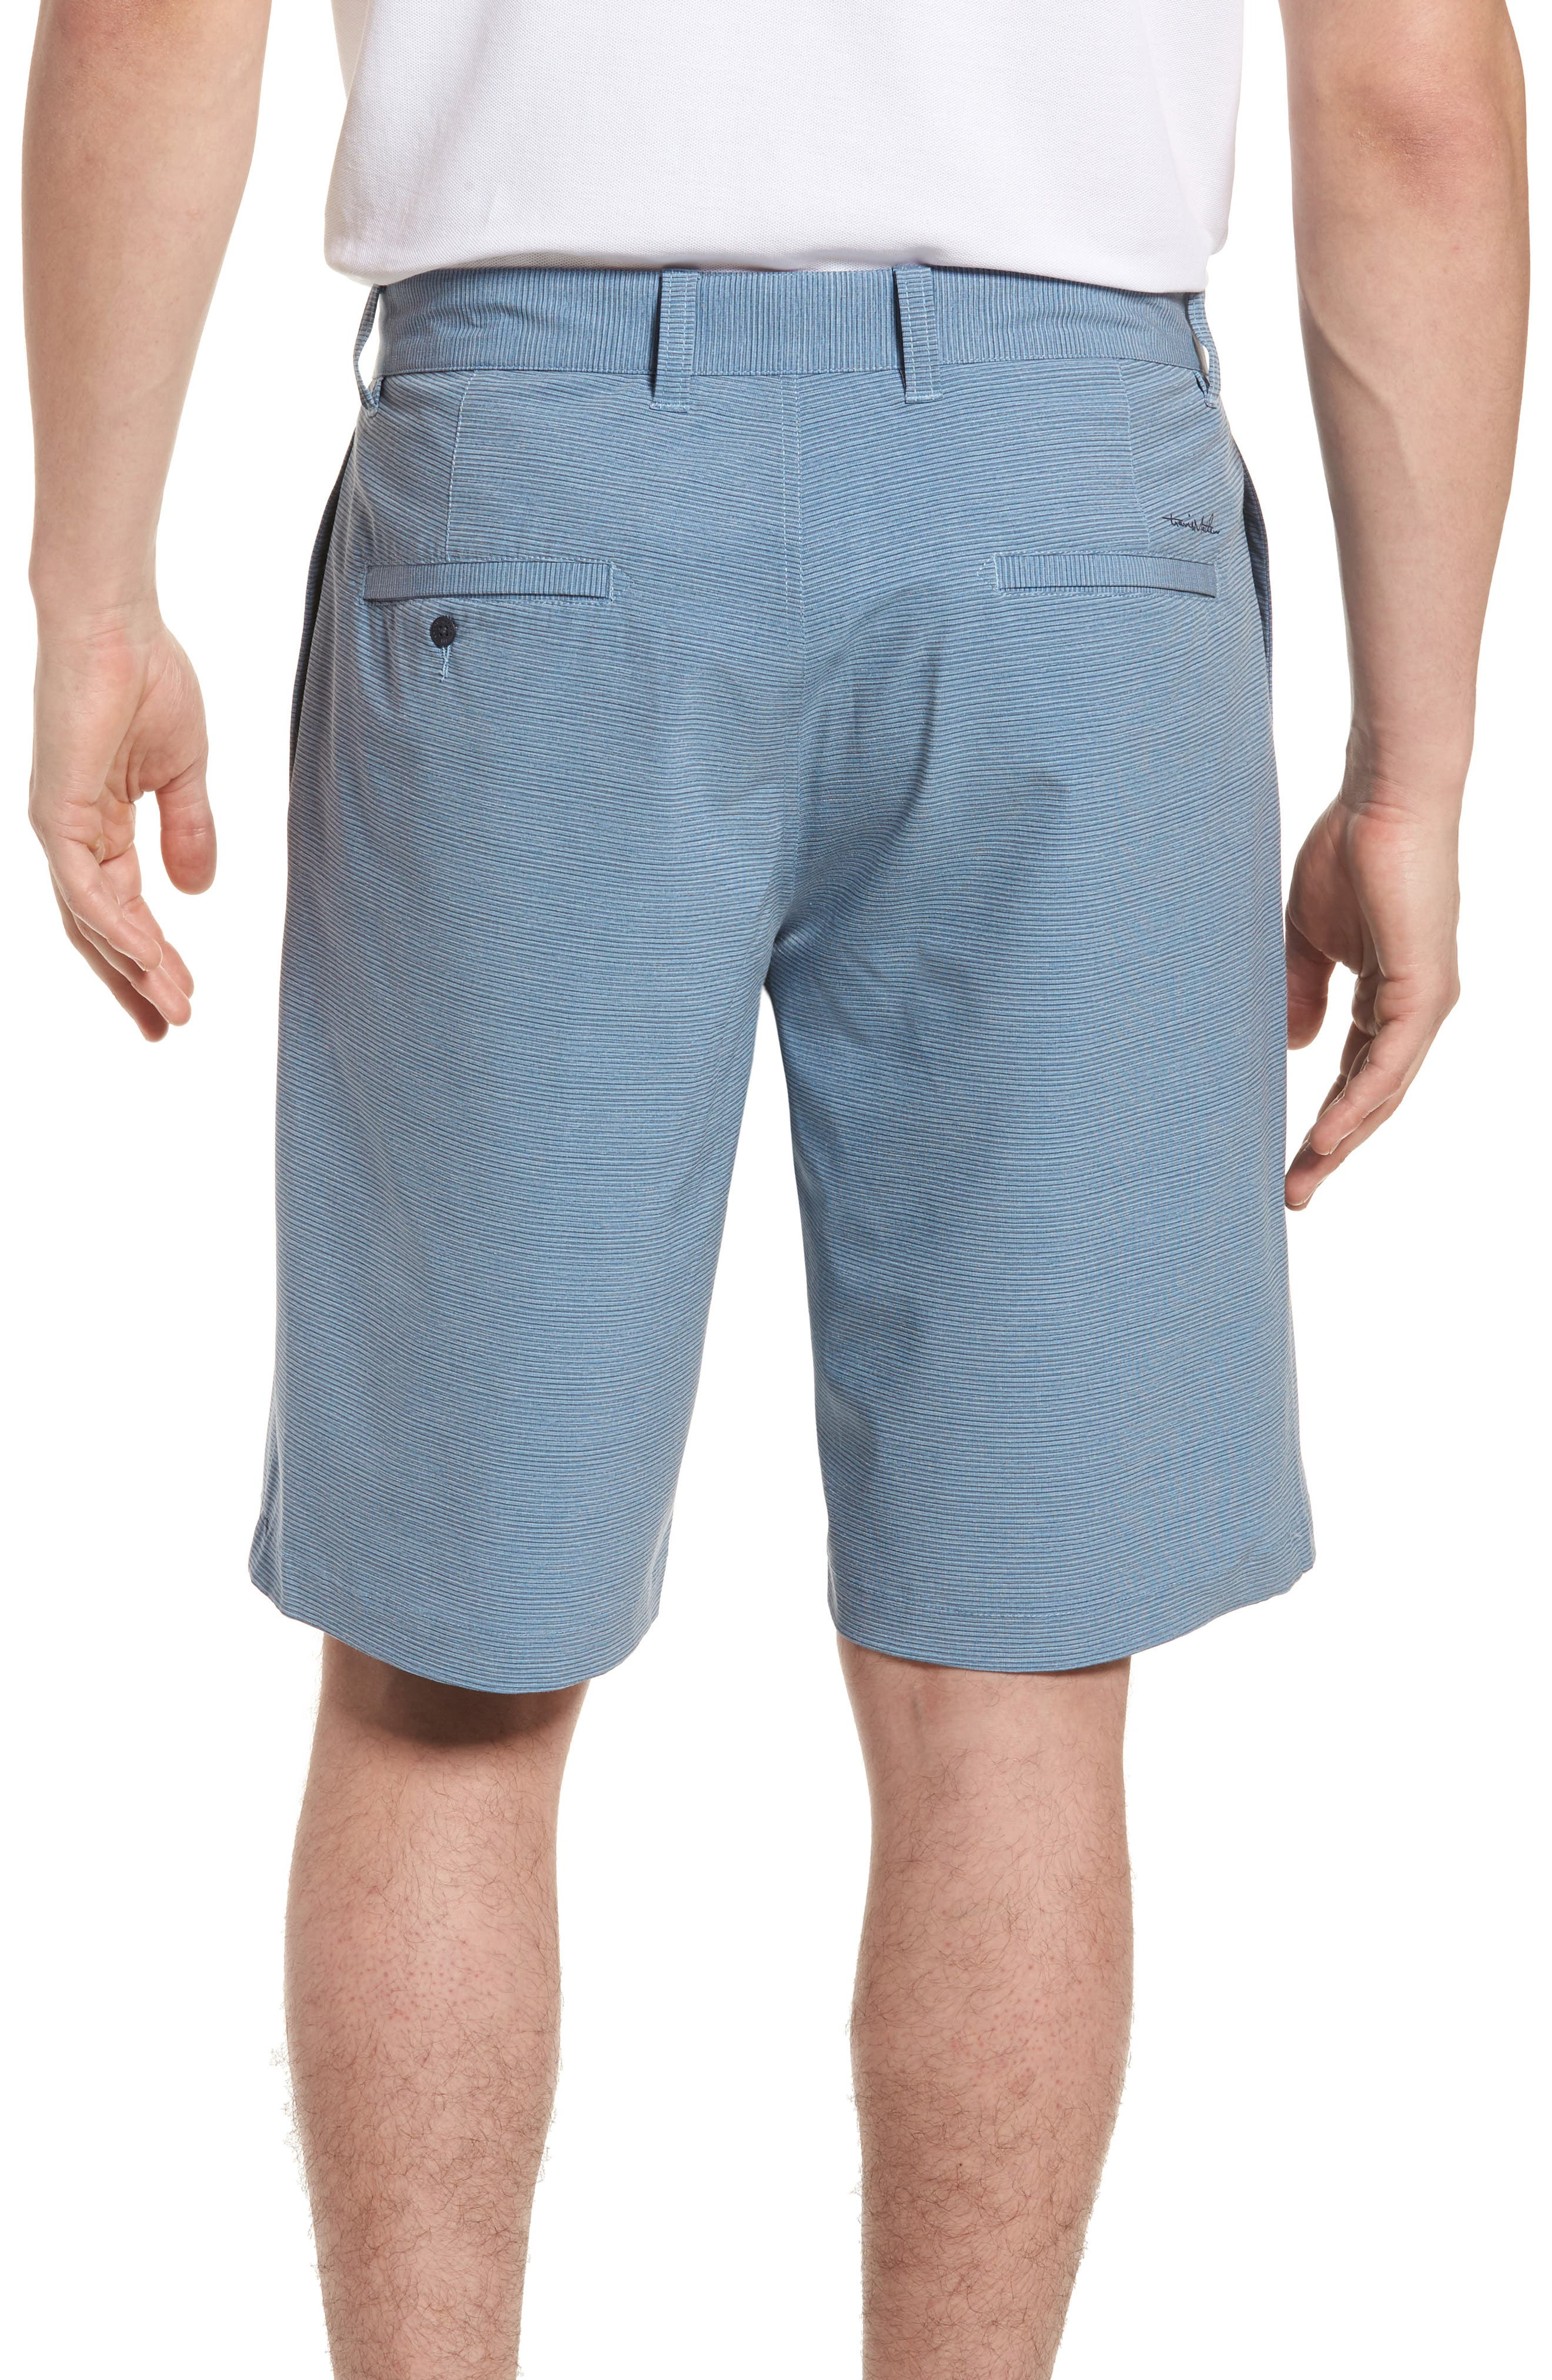 Toro Regular Fit Microstripe Shorts,                             Alternate thumbnail 2, color,                             French Blue/ Micro Chip